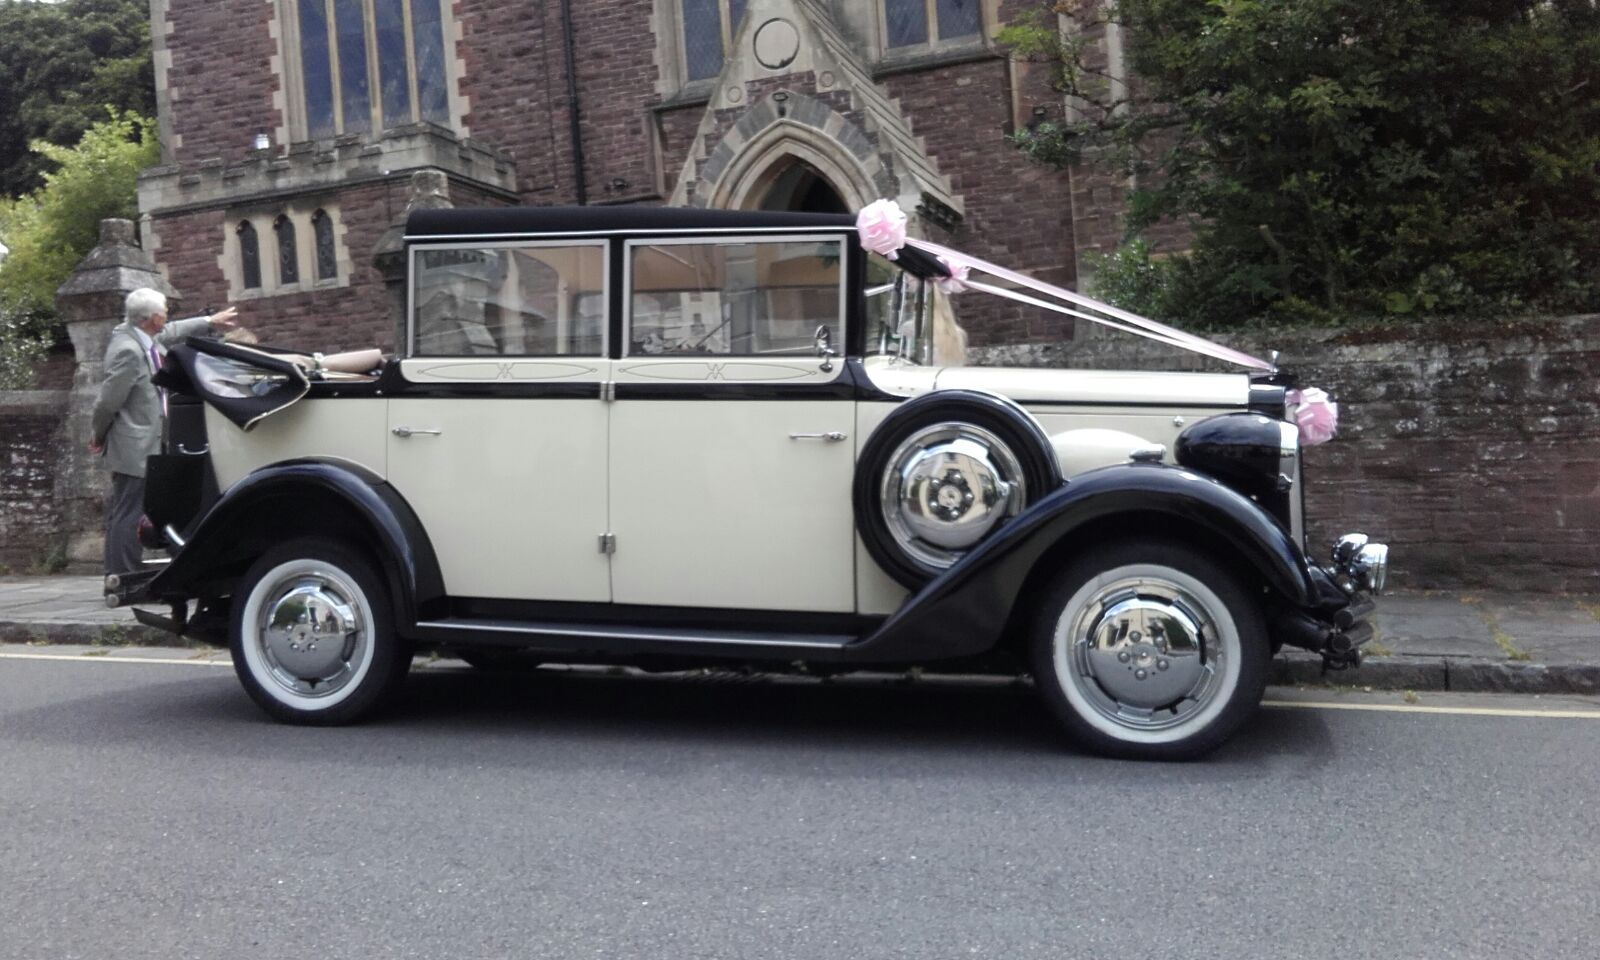 Bonnie Vintage Wedding Car hire